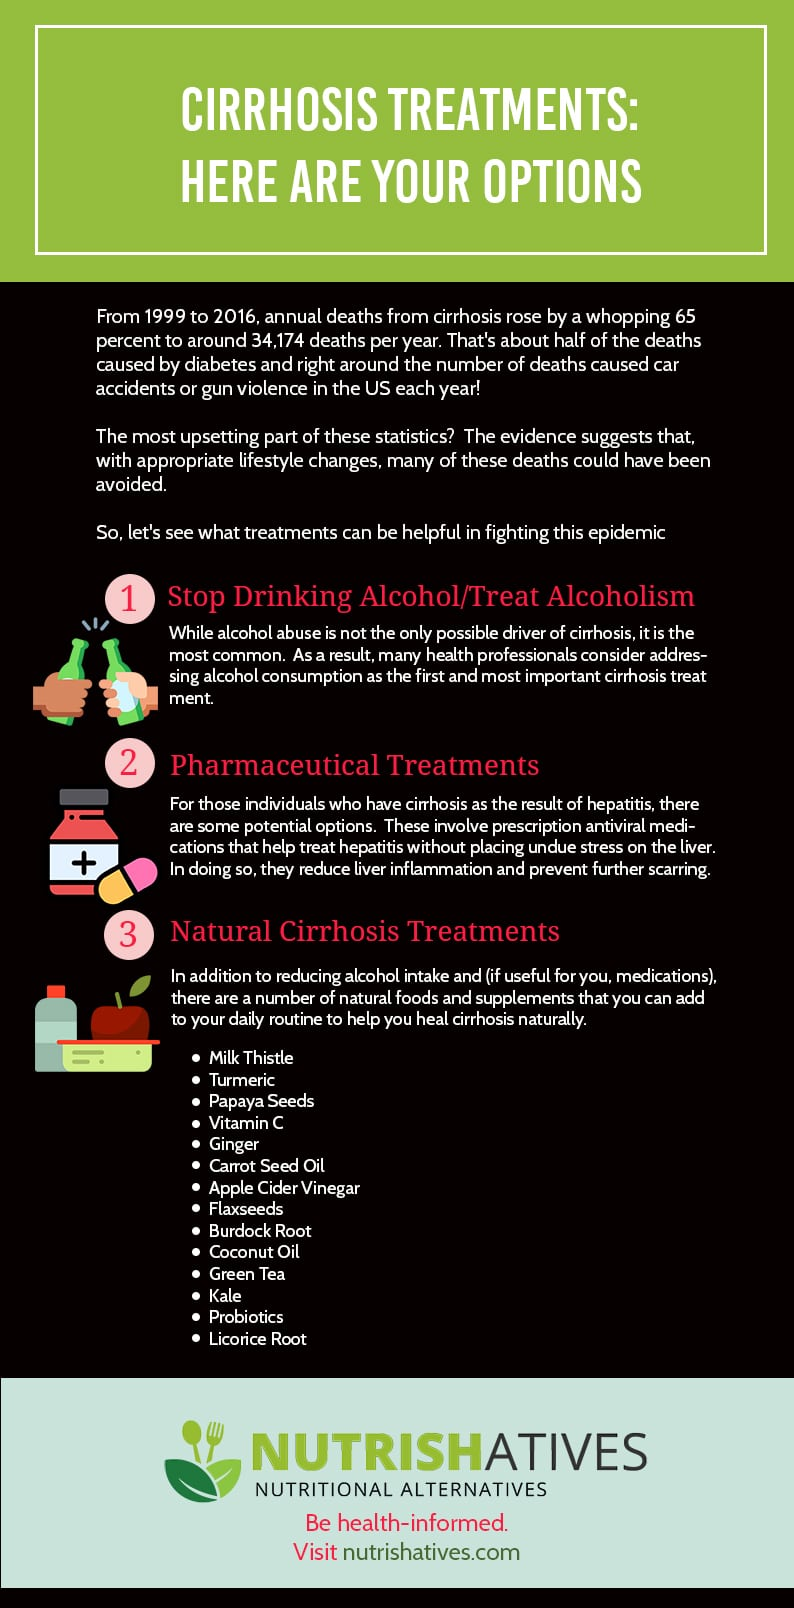 Cirrhosis Treatments Here Are Your Options